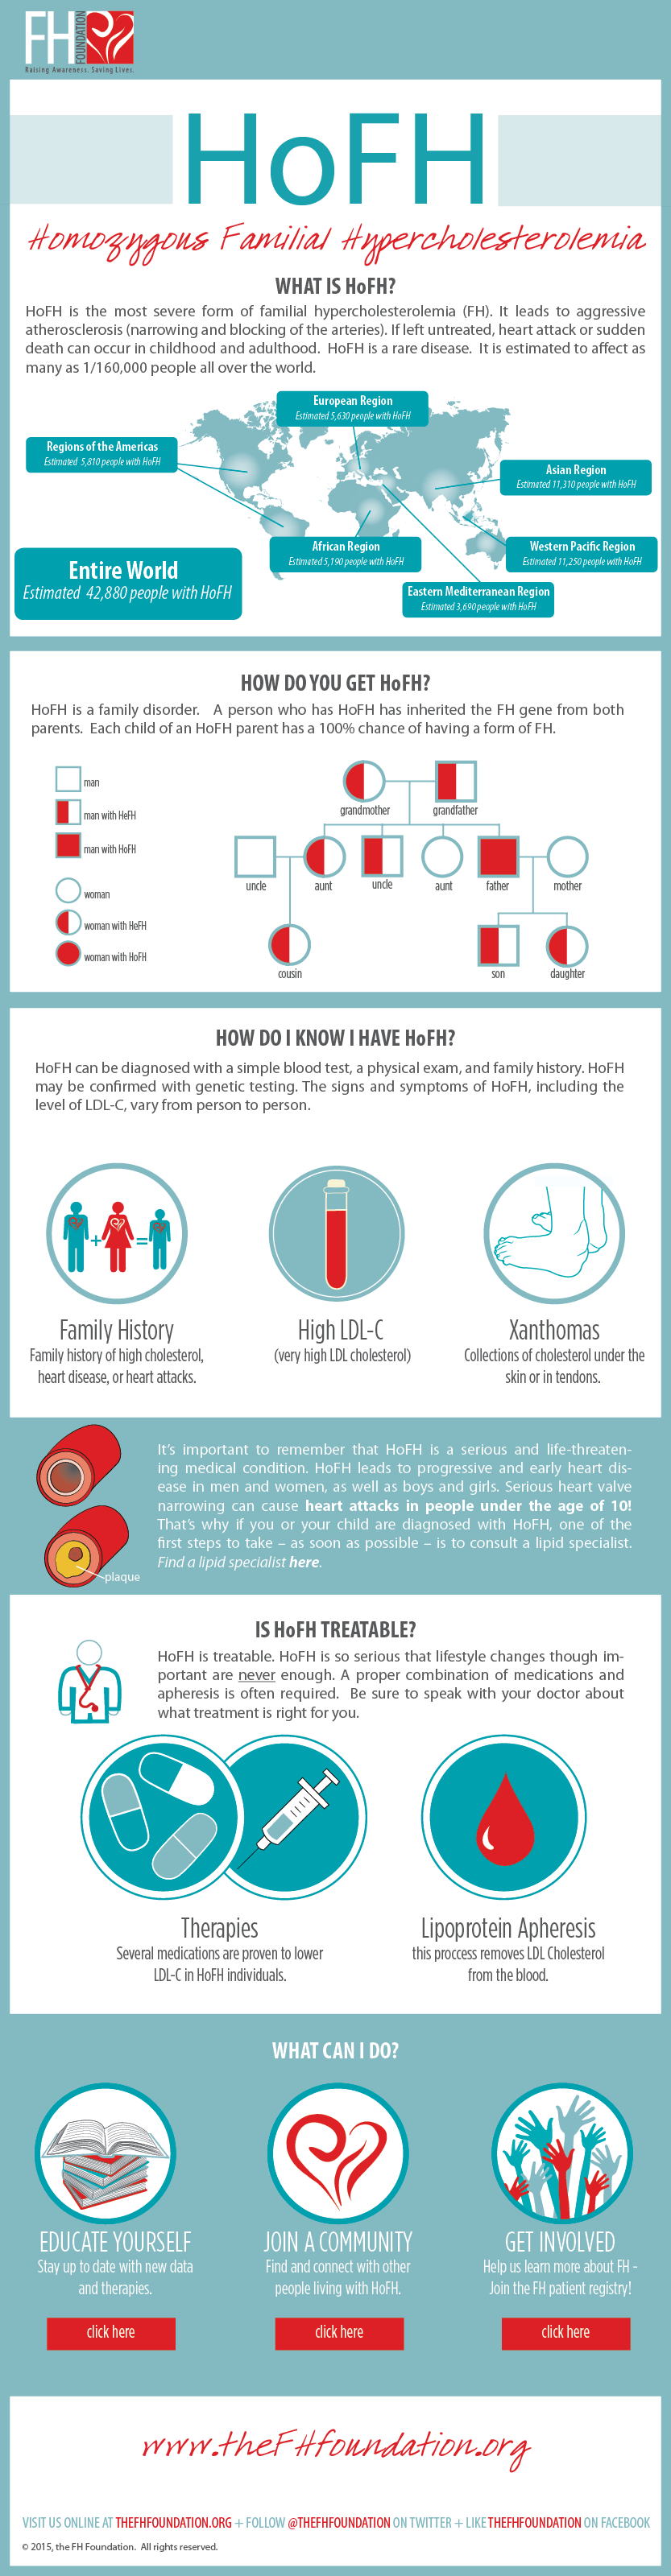 Infographic_HoFH_FINAL_3